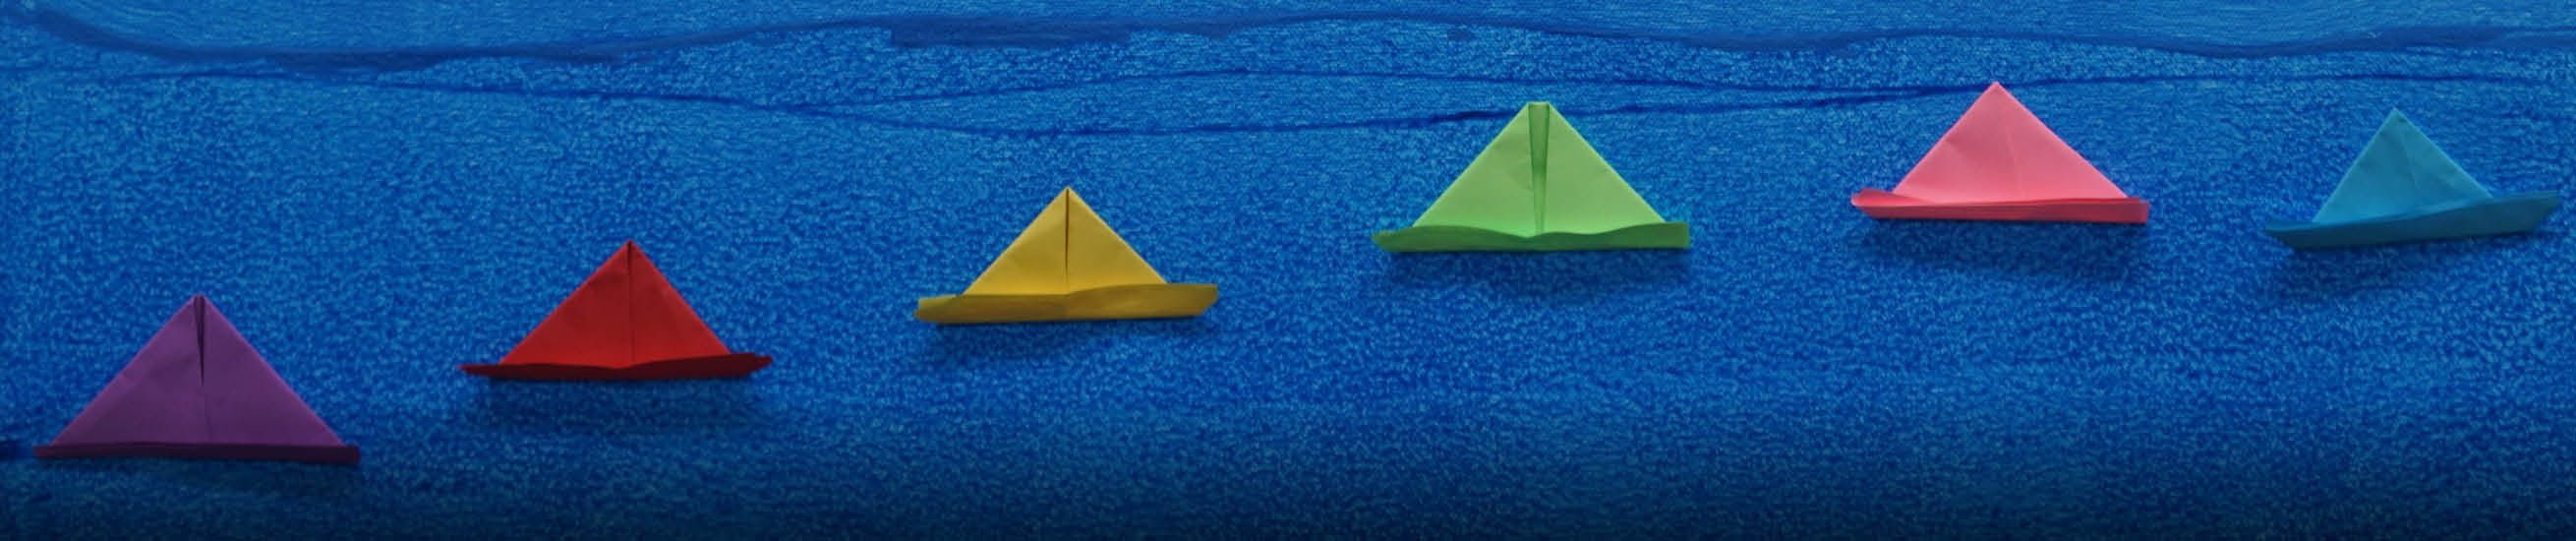 Artwor with blue background and paper boats